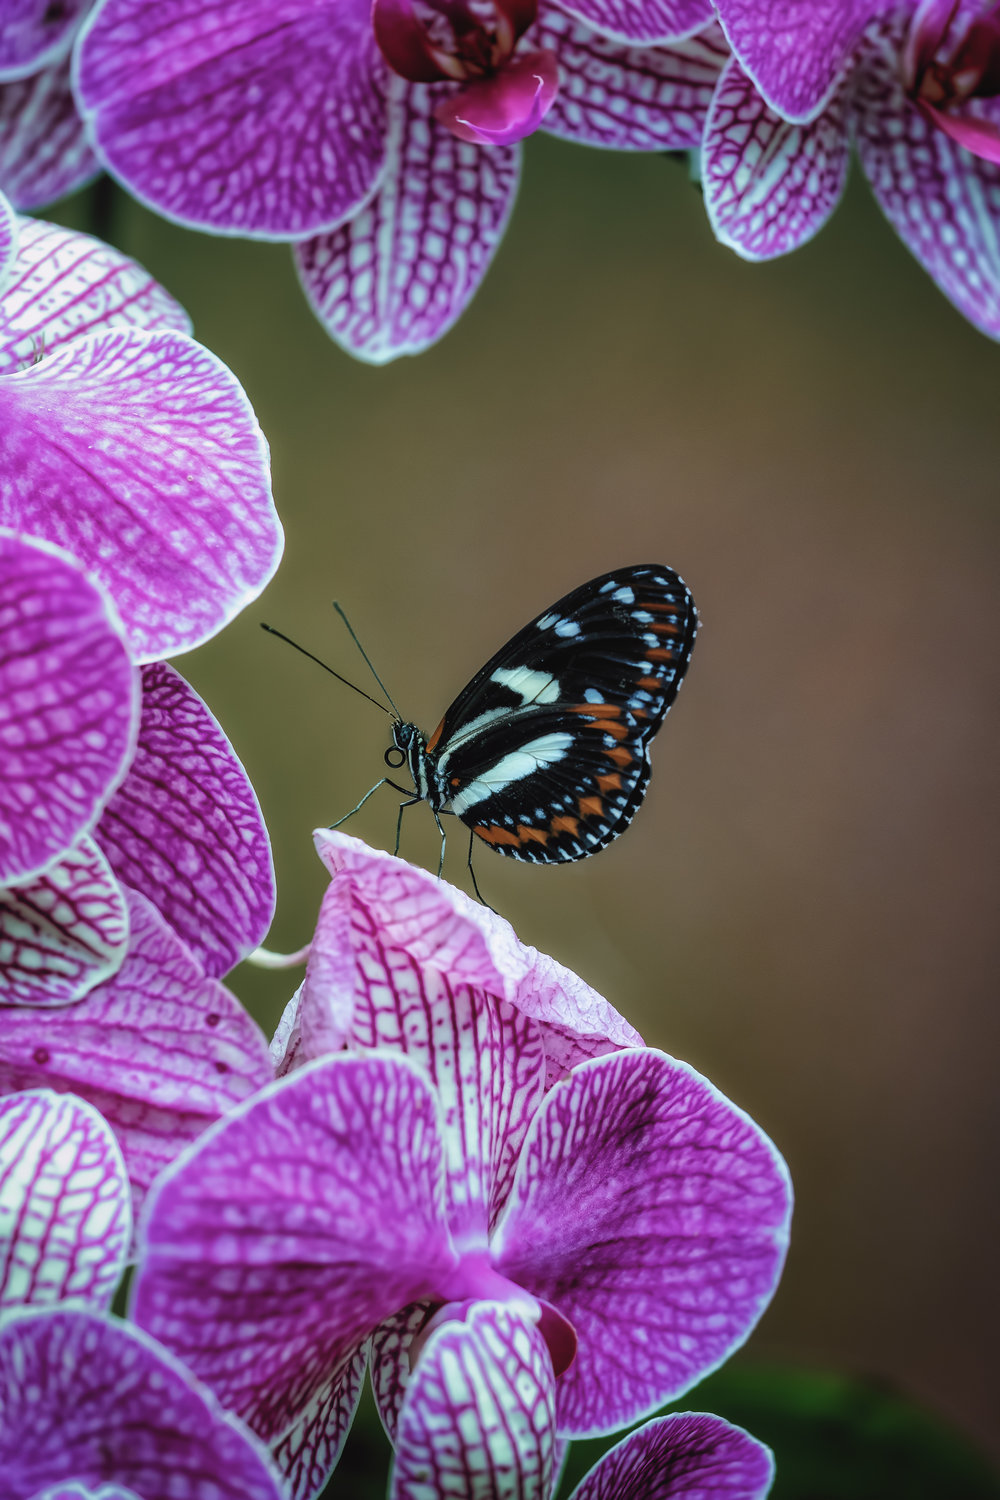 Butterfly with Orchids - Fujifilm X-T3, 1/125 @ f/4.0, ISO 400, 80mm macro. Shot at Mariposario de Mindo; a butterfly garden in Mindo, Ecuador.